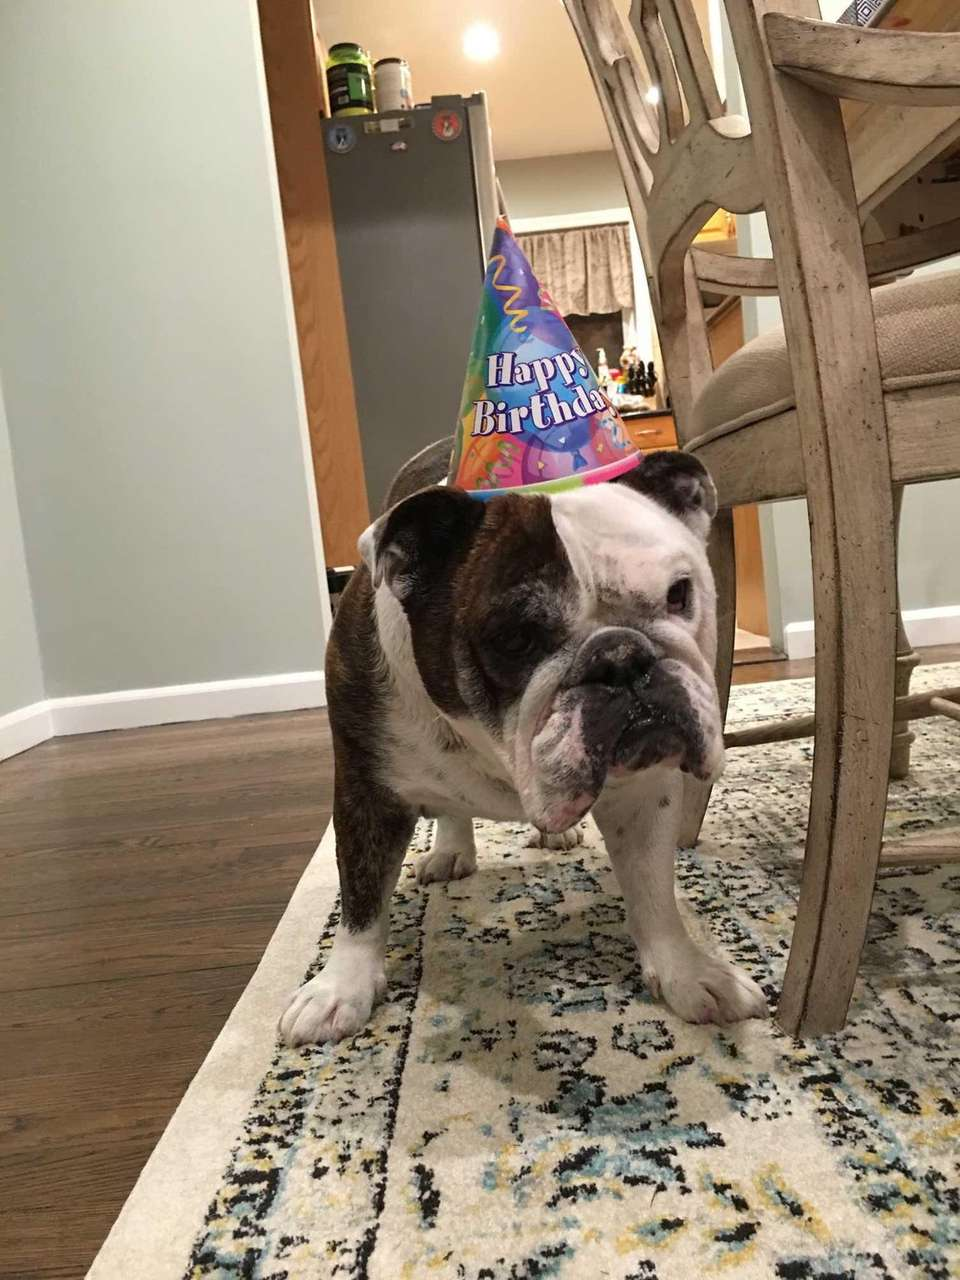 Our bully dog Lilos birthday